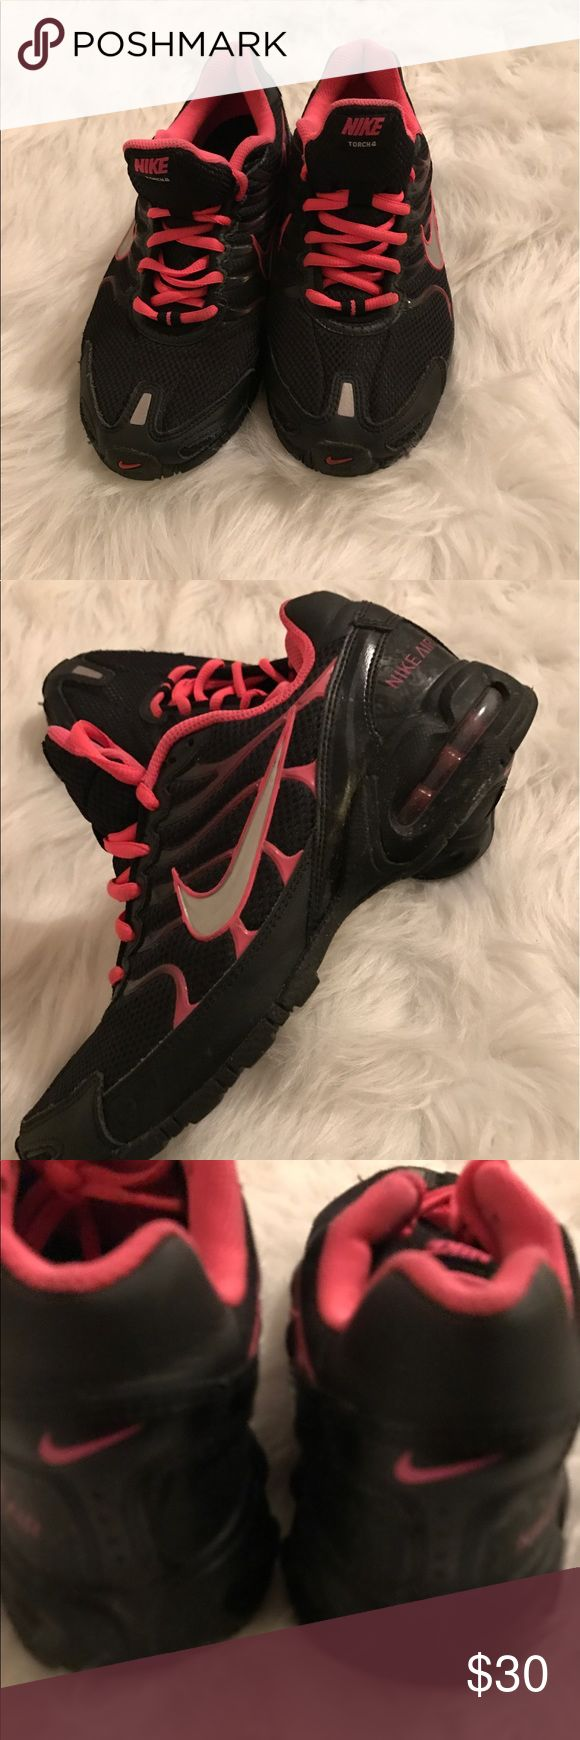 Nike air max size 7Y great condition Nike air max size 7Y also fits ladies 9. If your shoe size is 8.5 in ladies you are safe as well! Cute stylish sneaker Nike Shoes Athletic Shoes